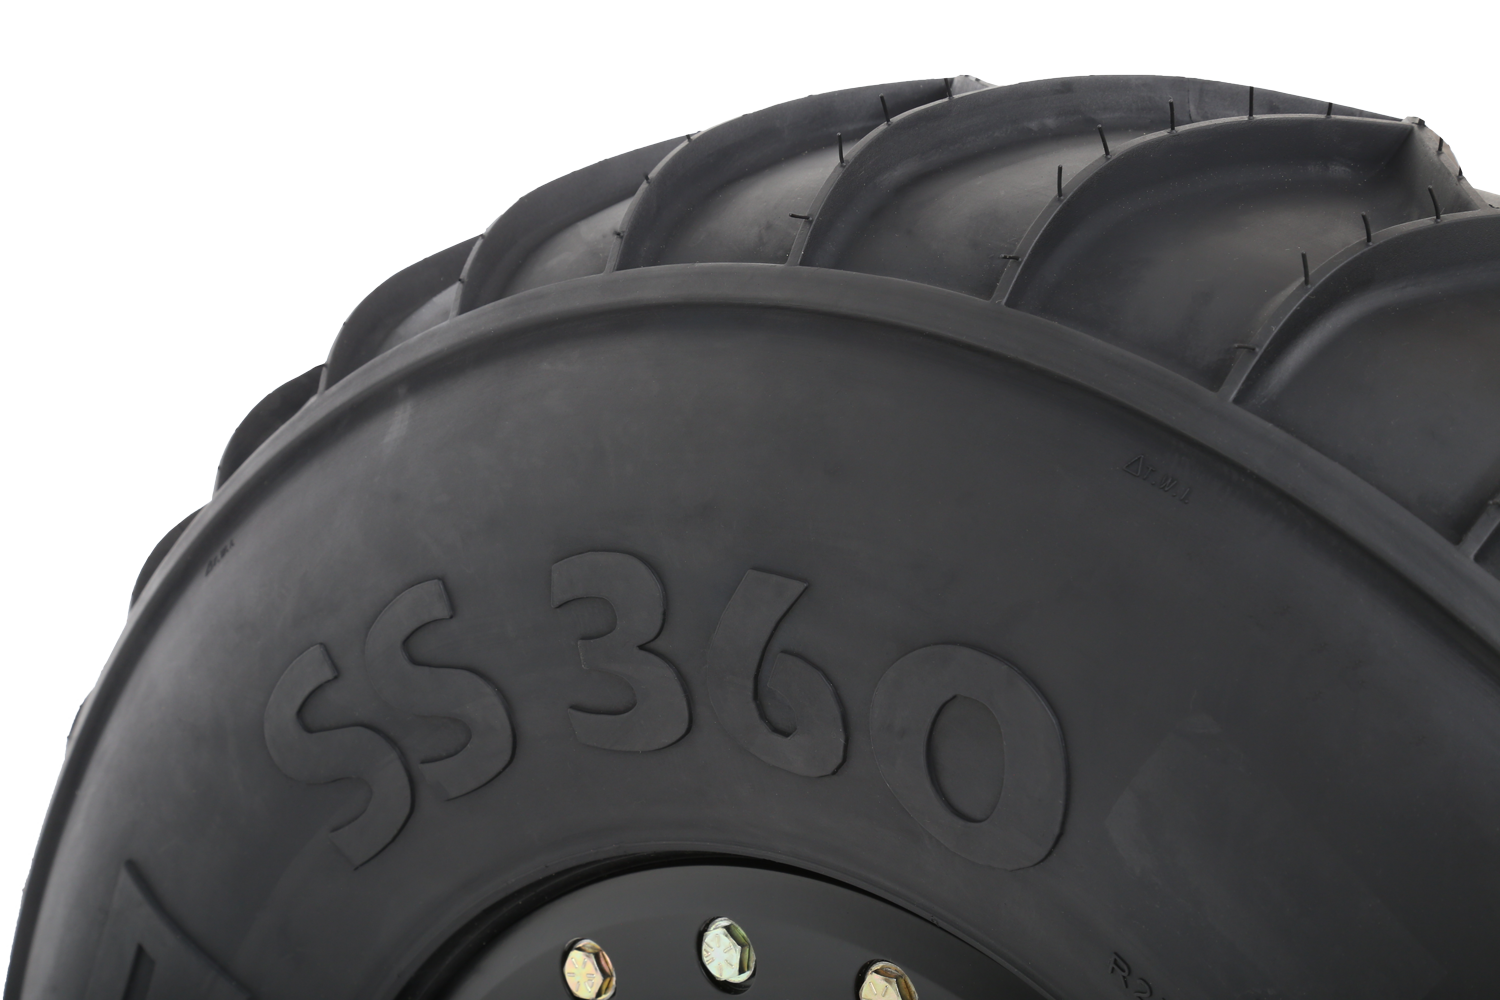 SS360-side-detail-1500.png